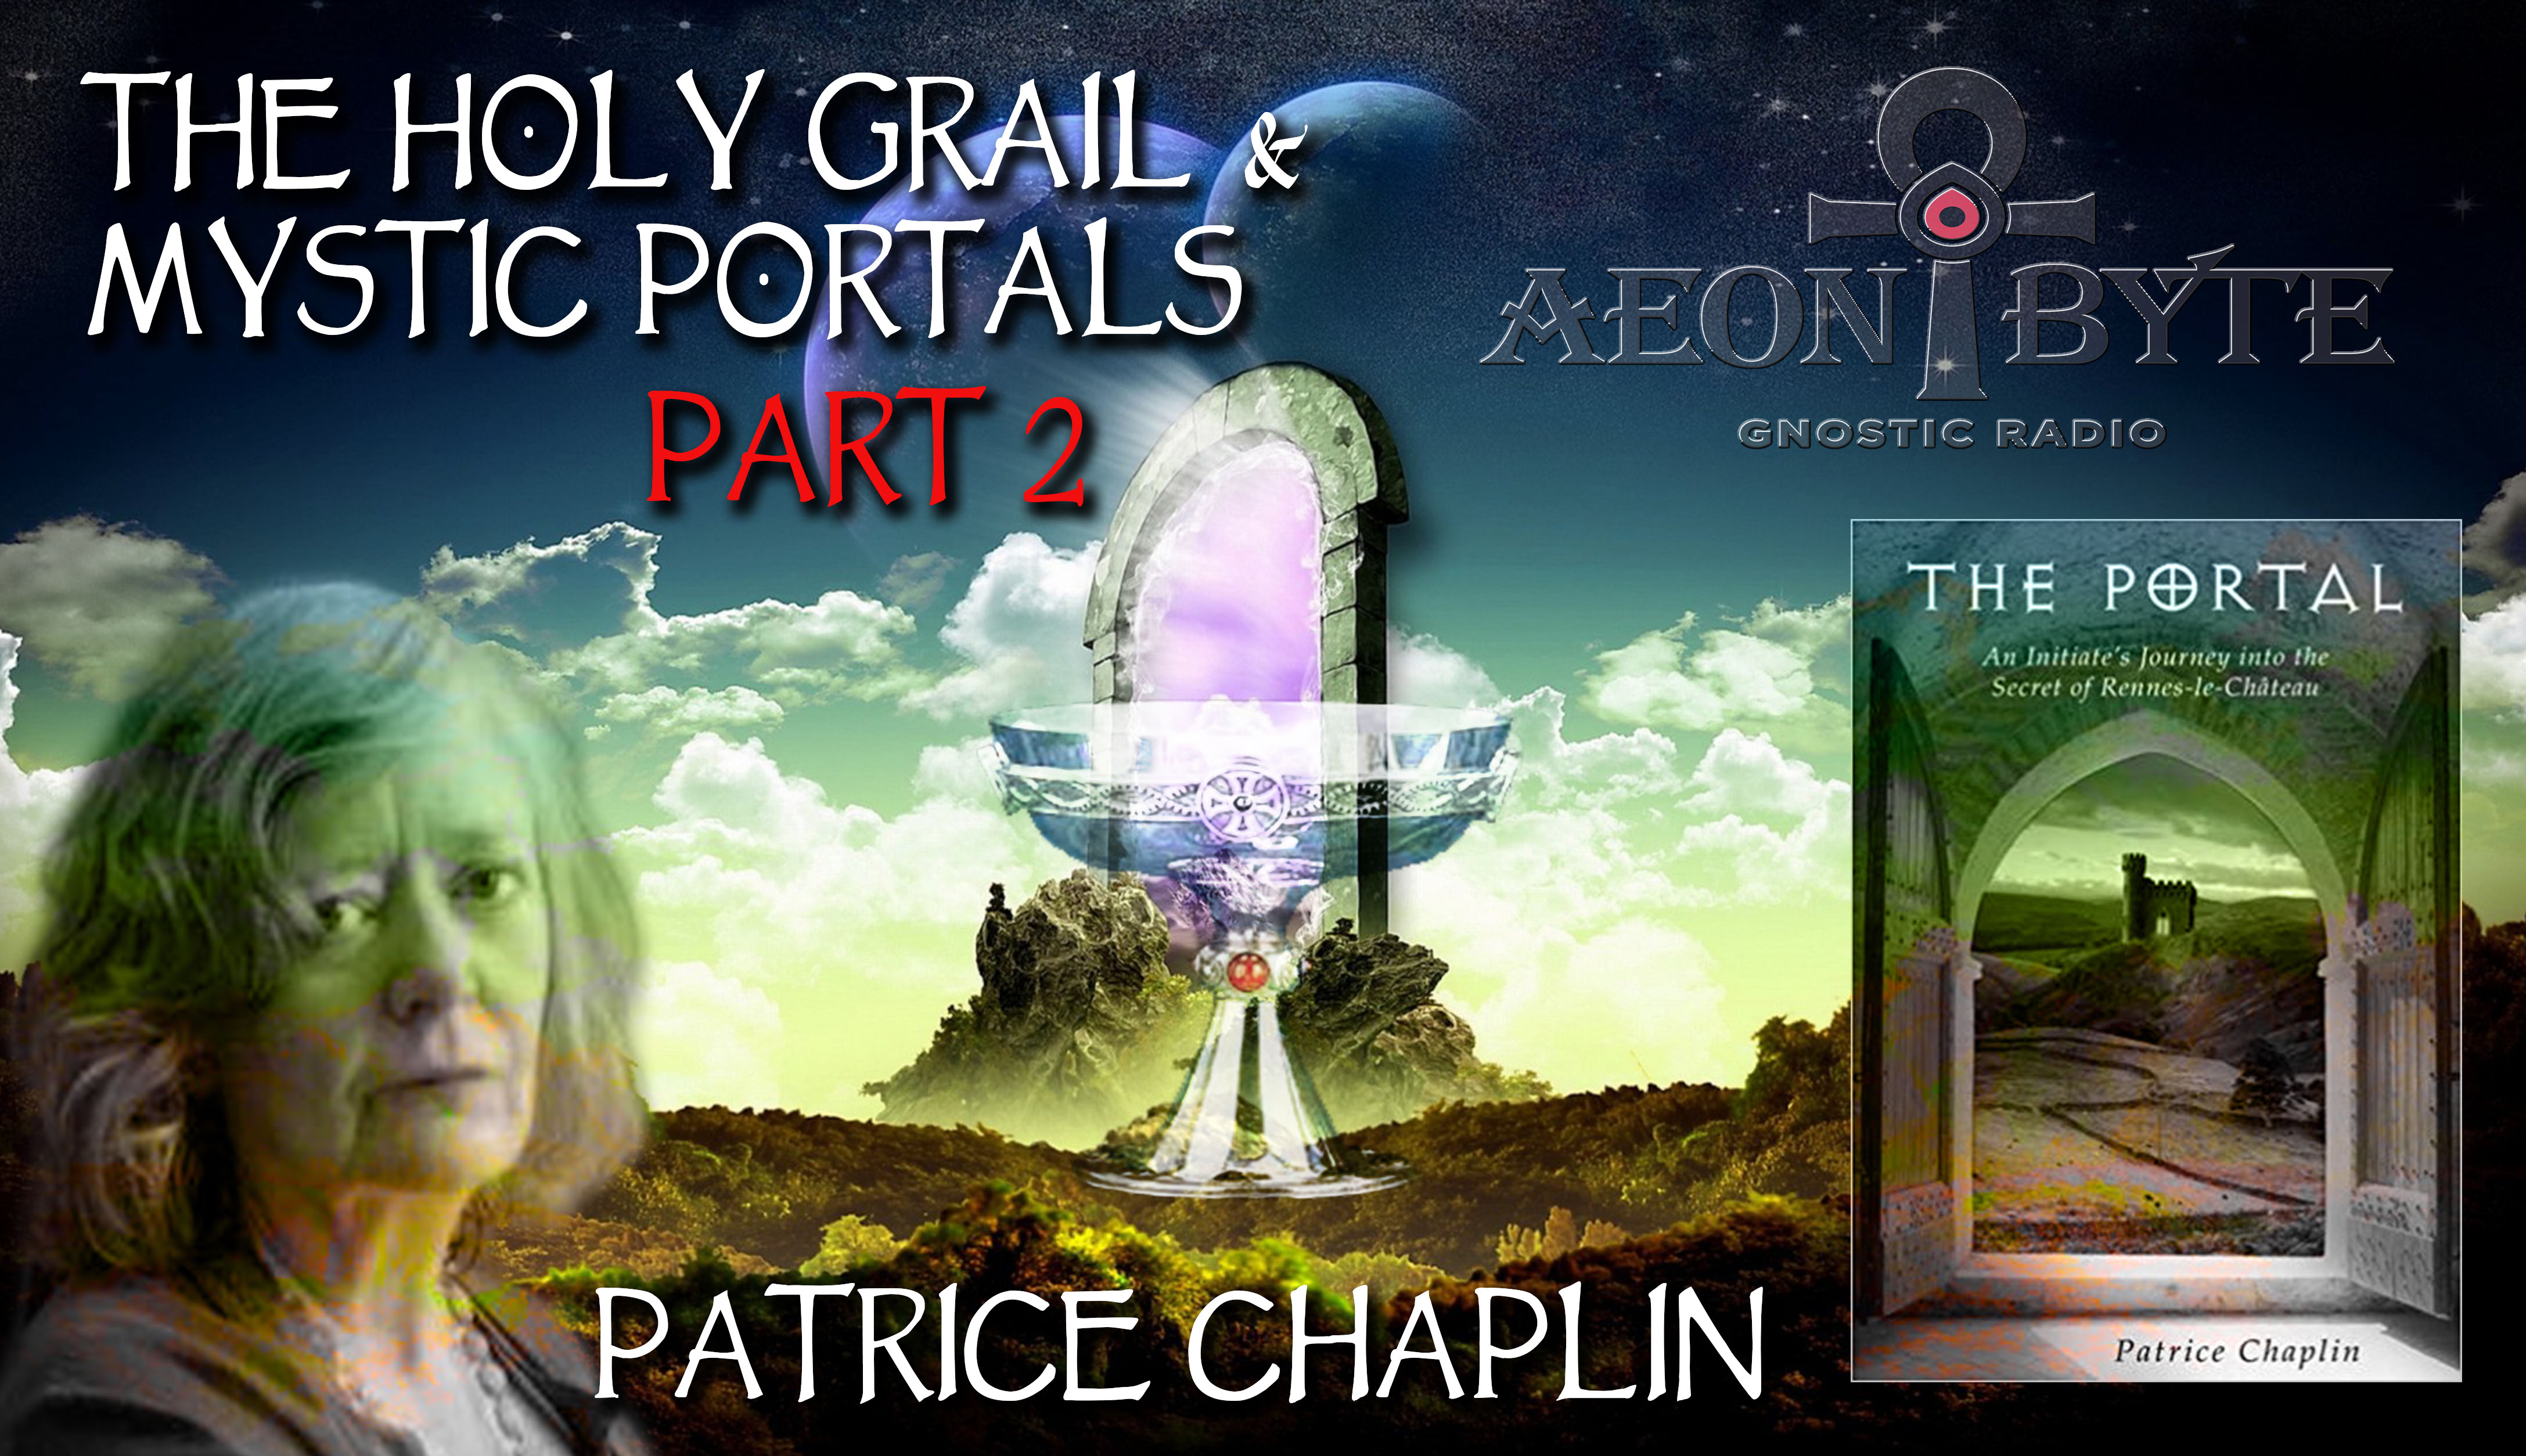 Complete Episodes 2017 The Holy Grail and Interdimensional Portals Part 2